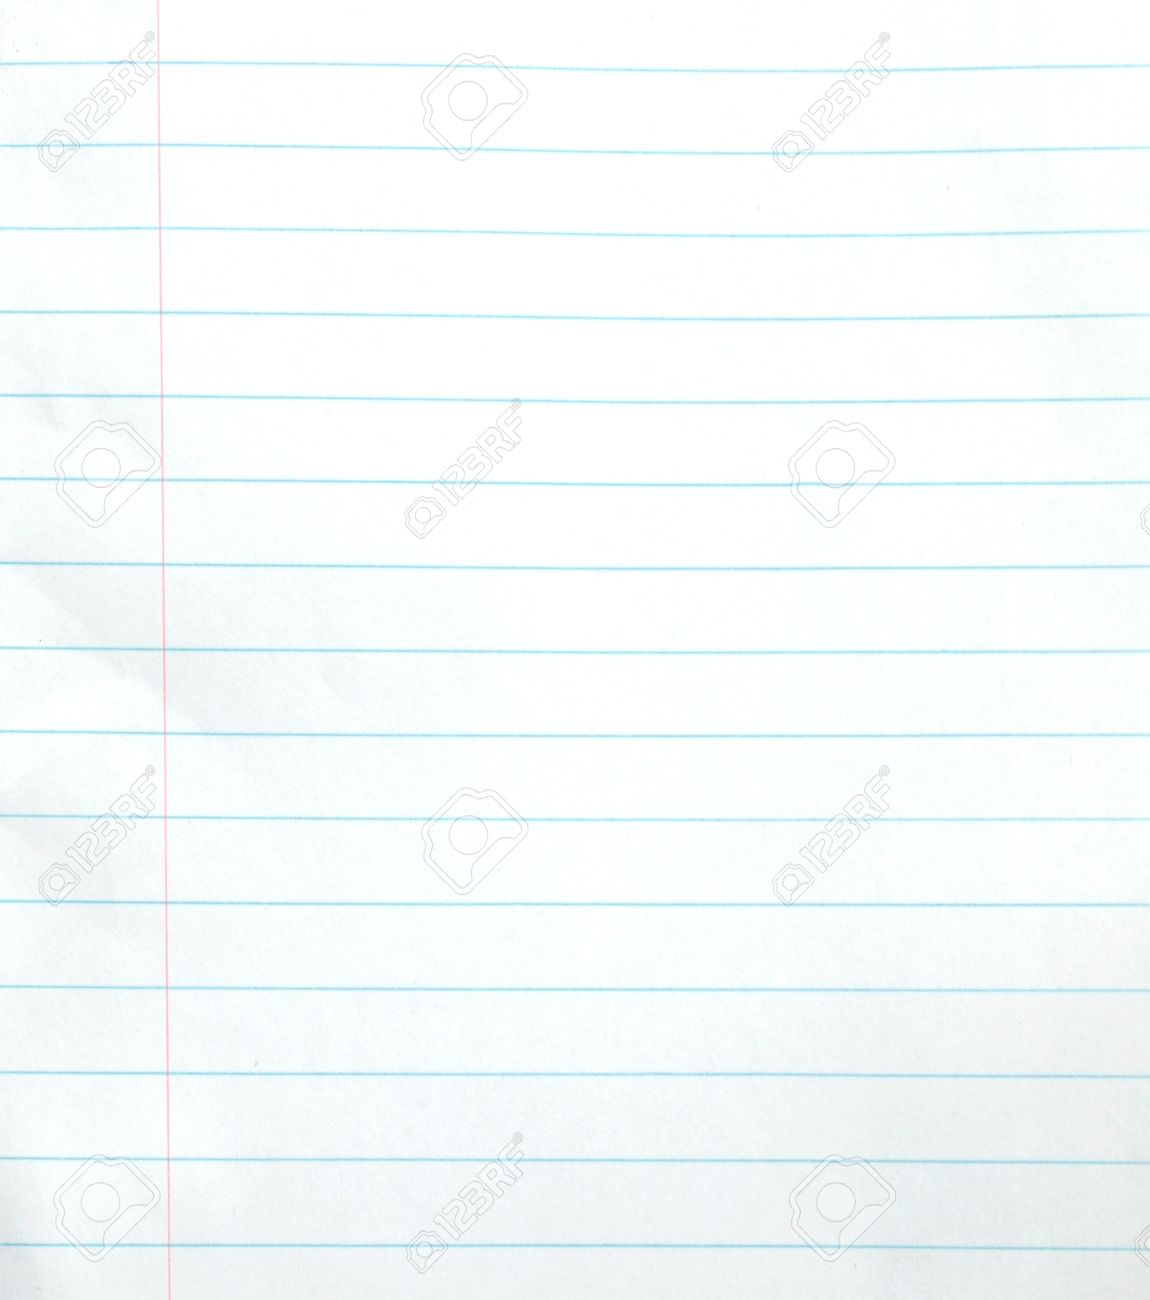 Blank Lined Notebook Paper Background Or Textured Photo – Blank Line Paper